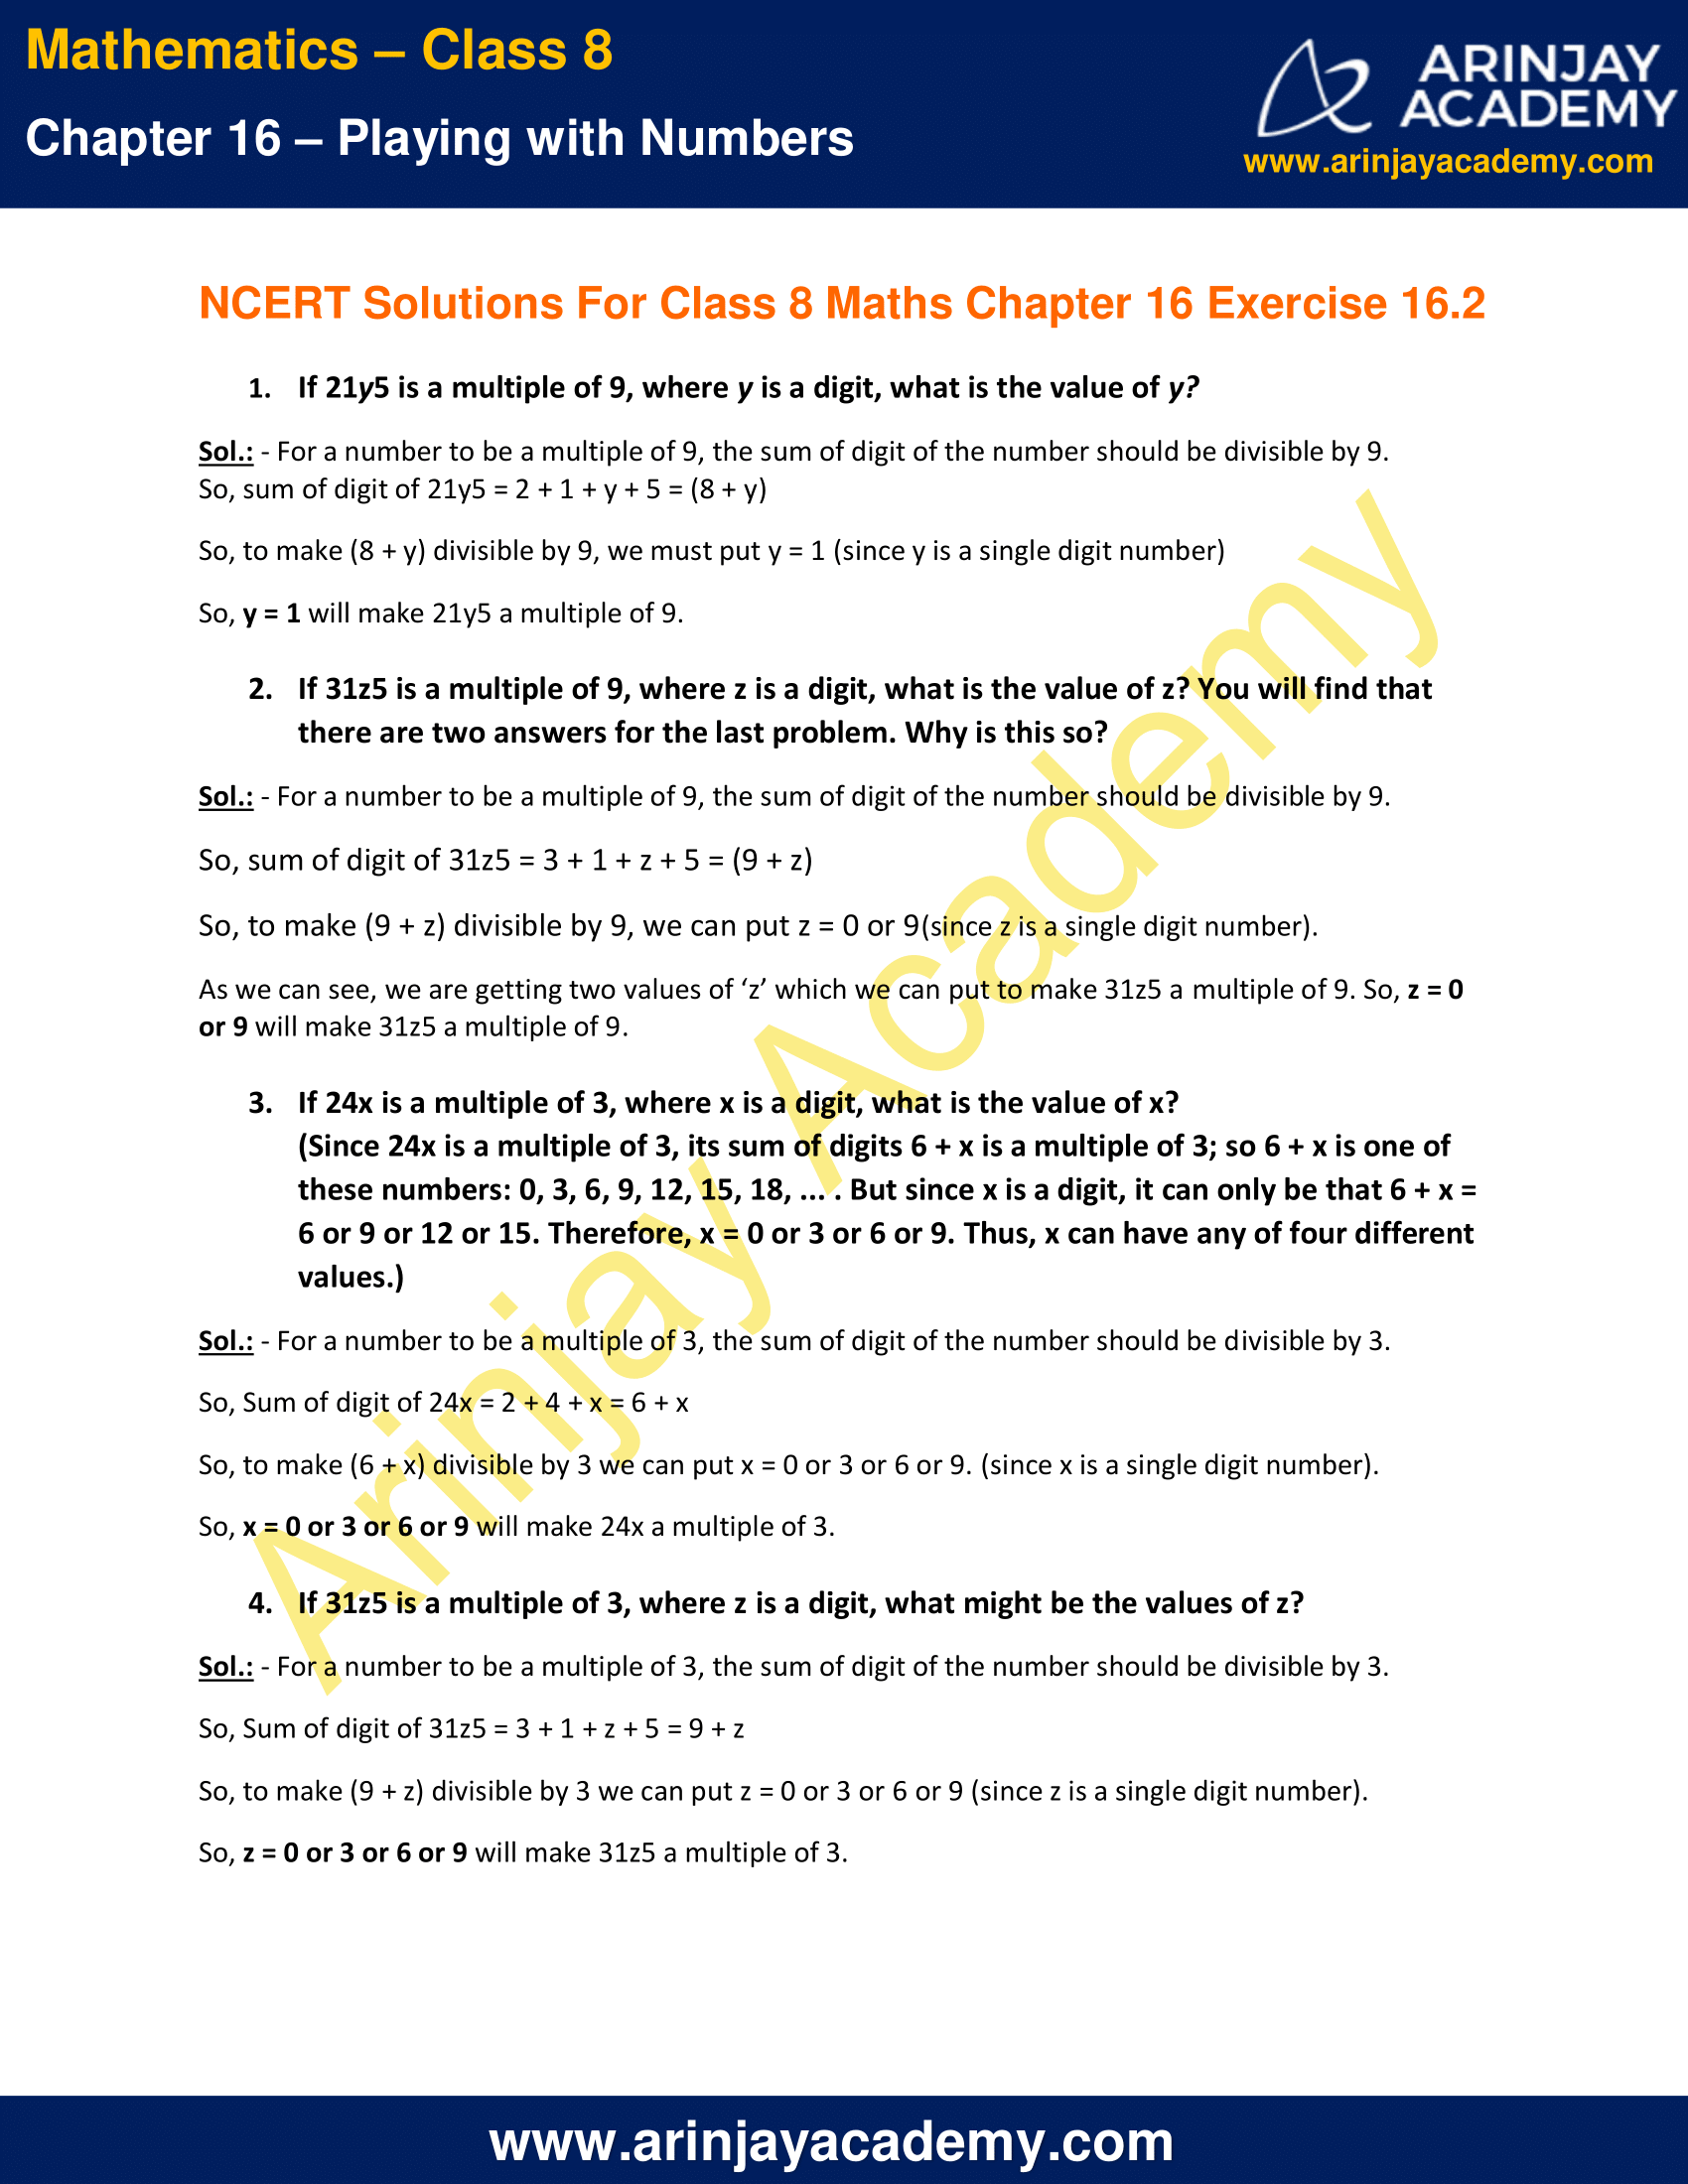 NCERT Solutions for Class 8 Maths Chapter 16 Exercise 16.2